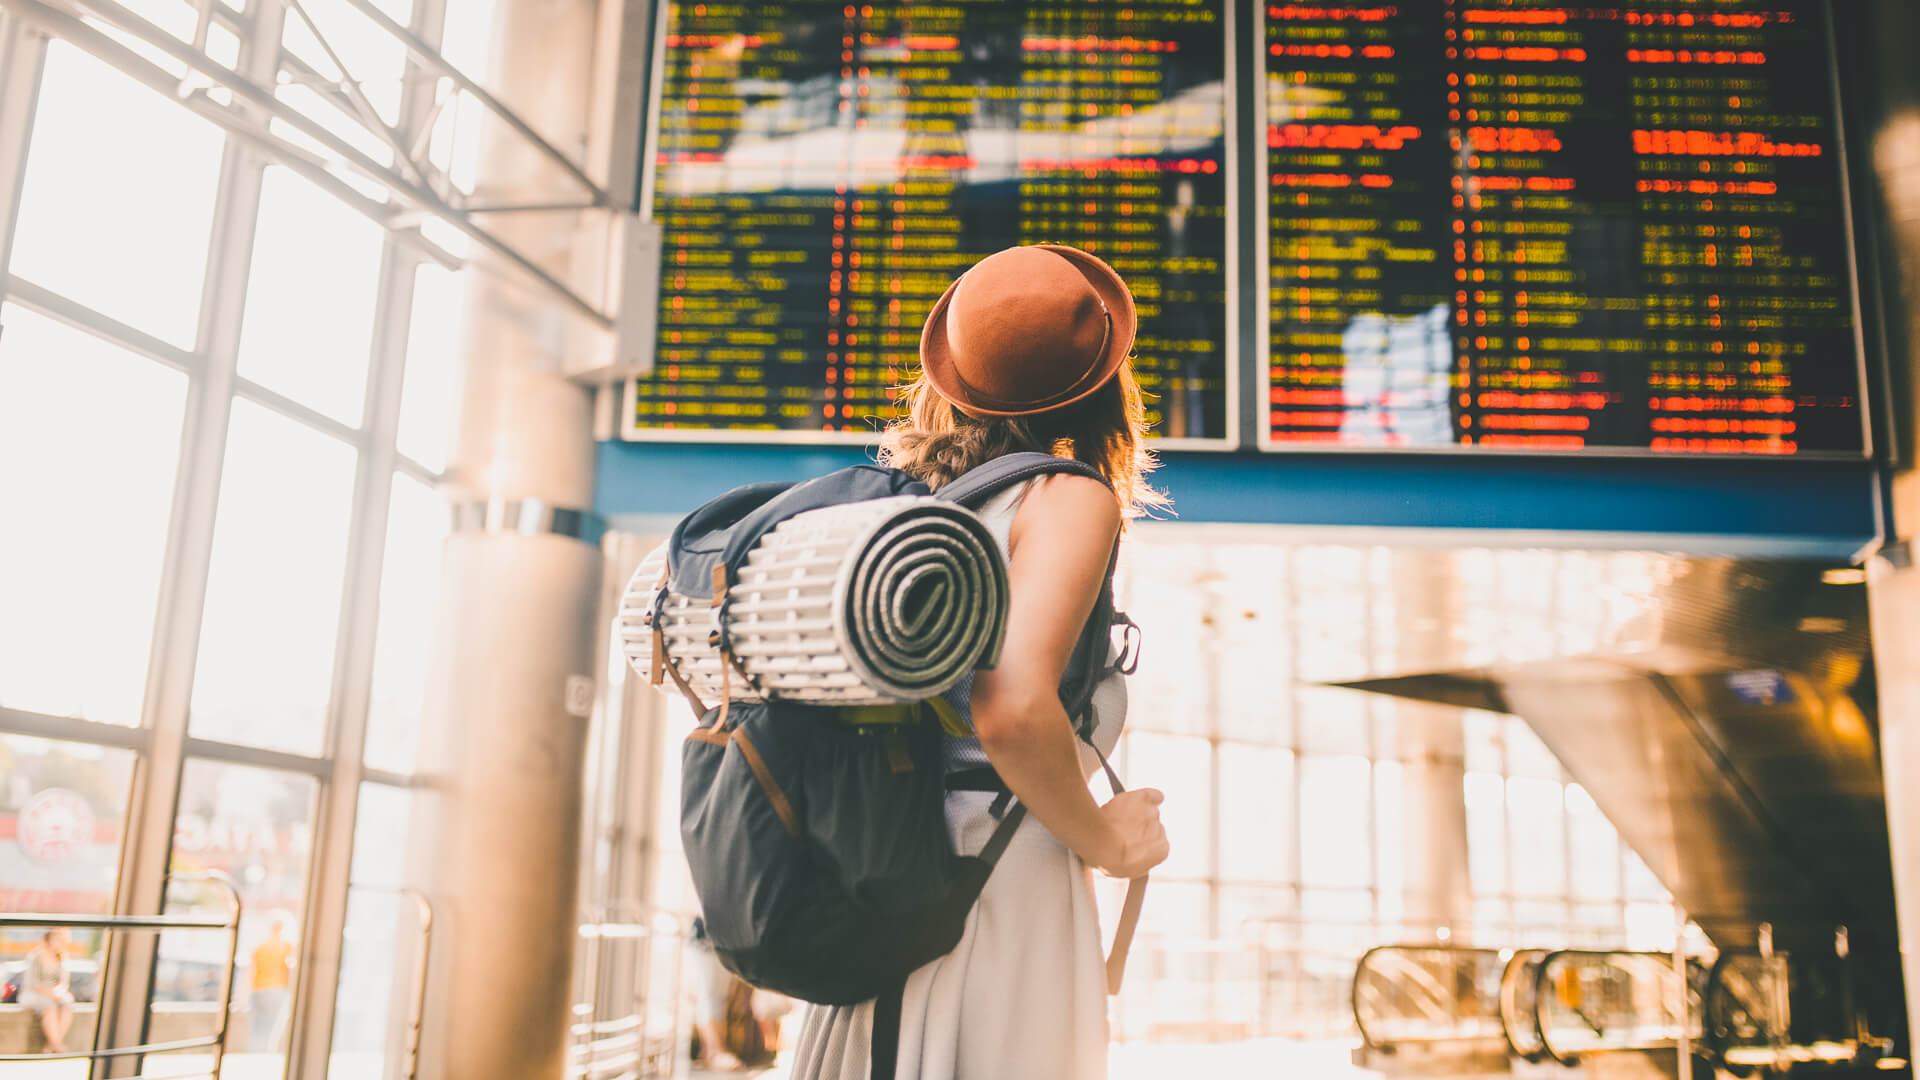 31 Airport Secrets Only Insiders Know